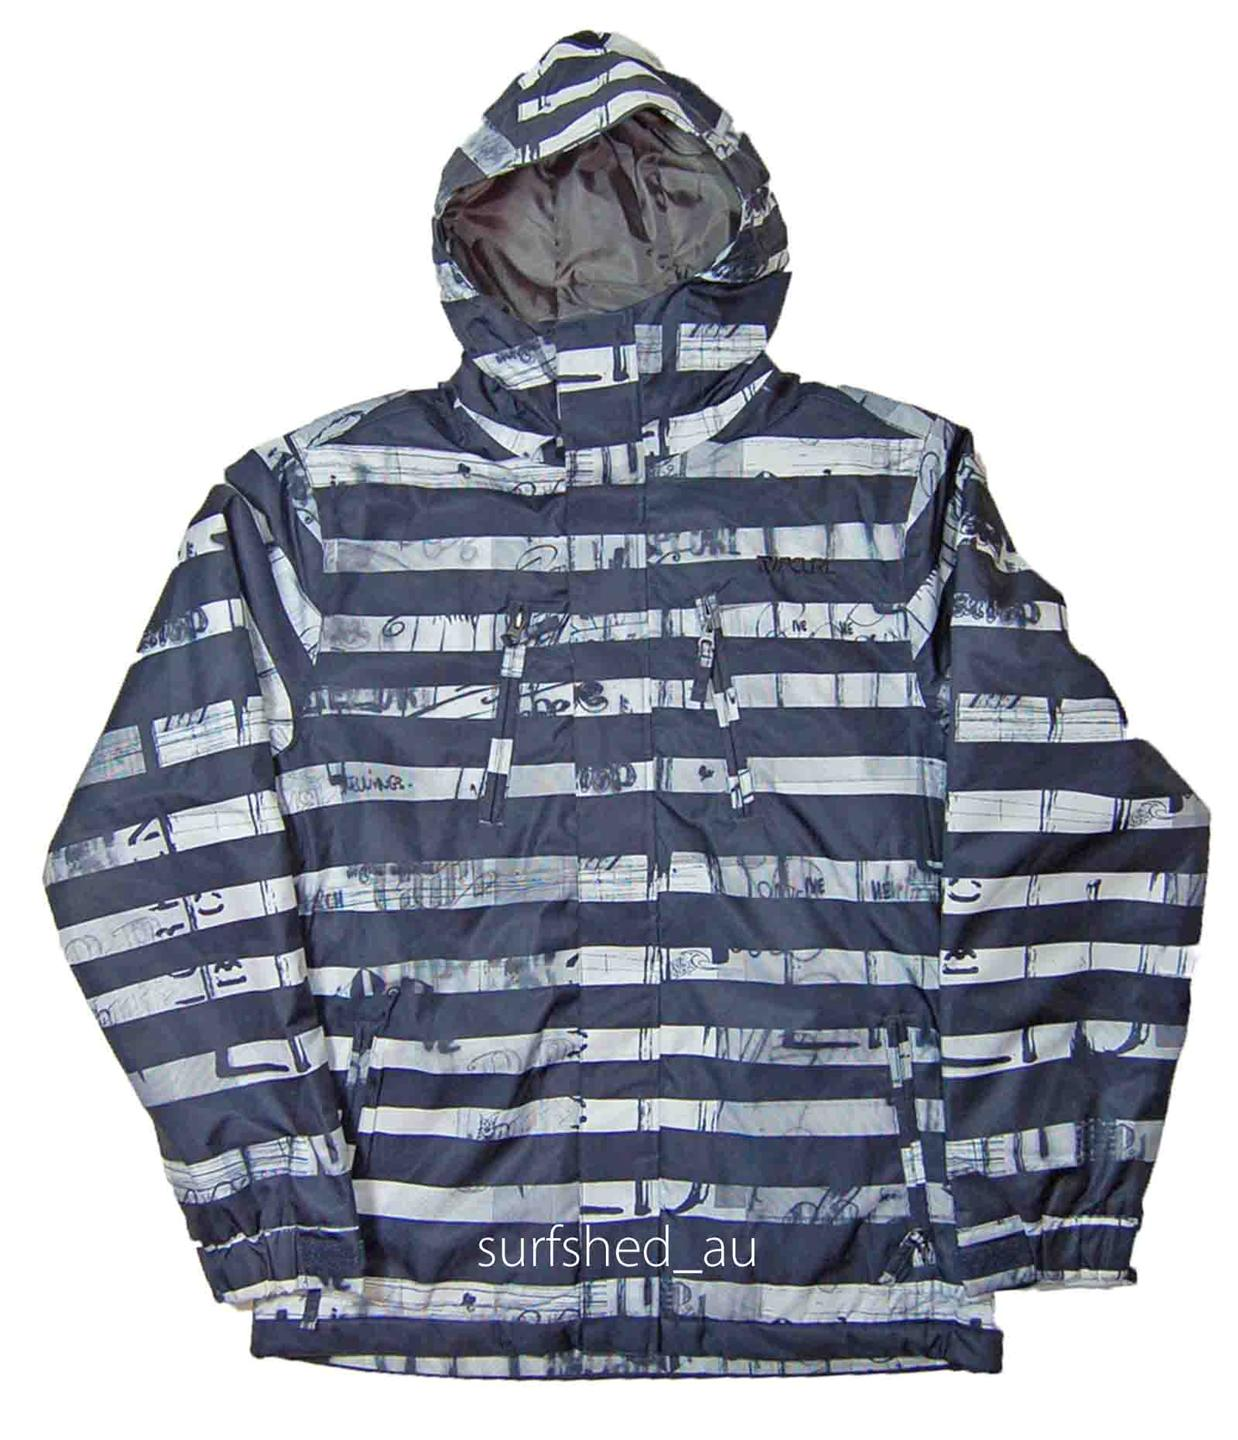 Size-M-Mens-Rip-Curl-ANSWER-Black-Snow-Board-Ski-Mountain-Waterproof-Jacket-New